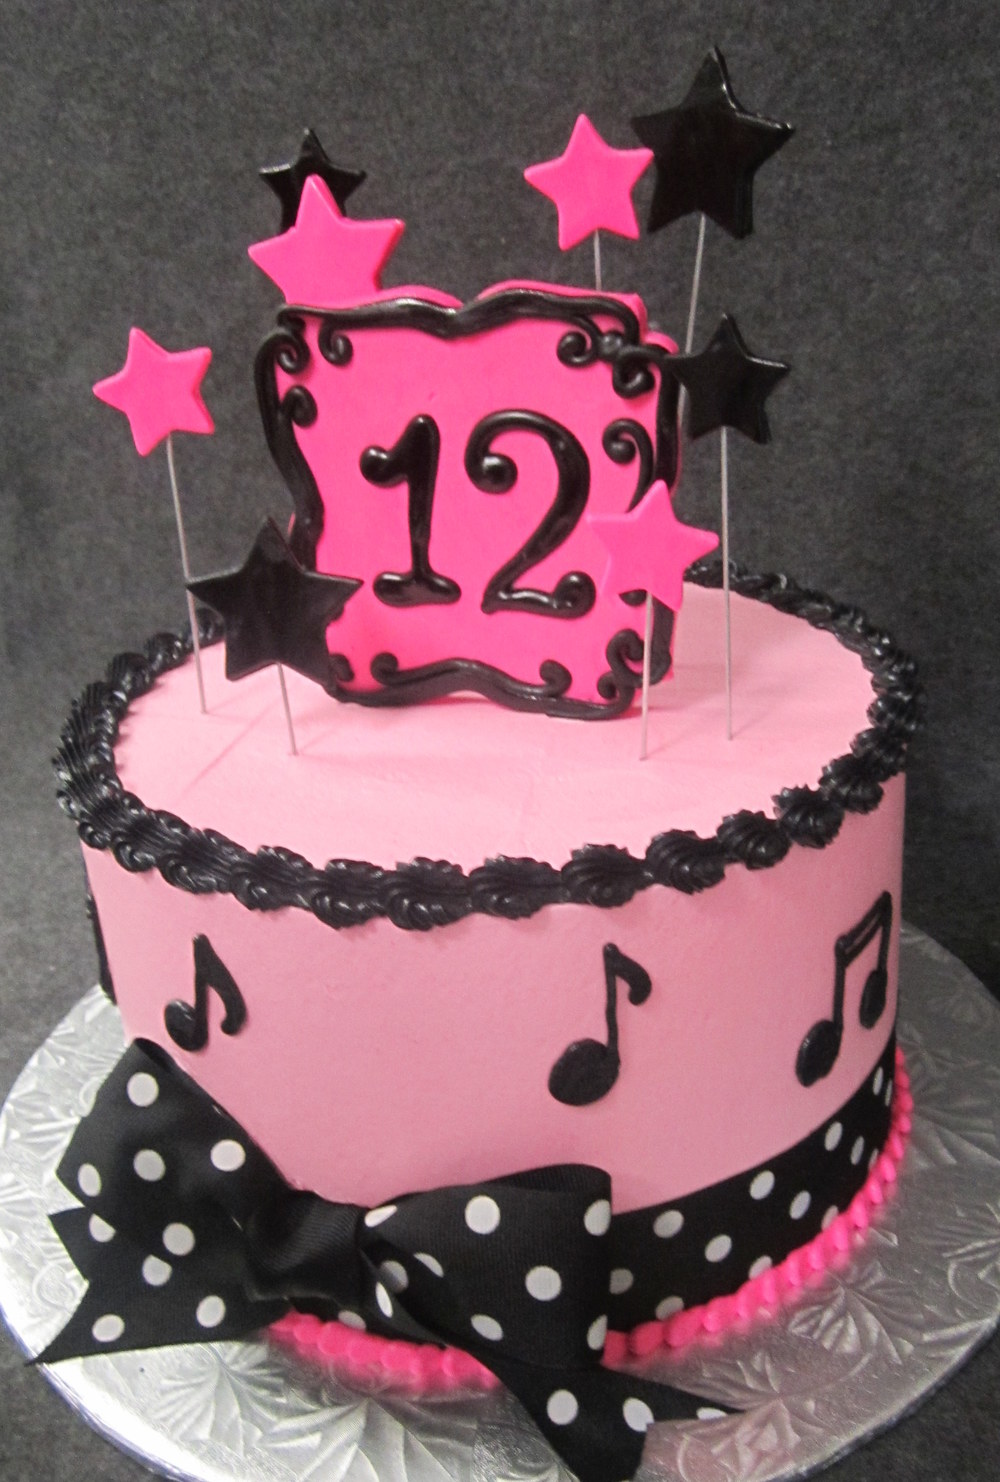 pink and black 12 plaque and star cake.JPG